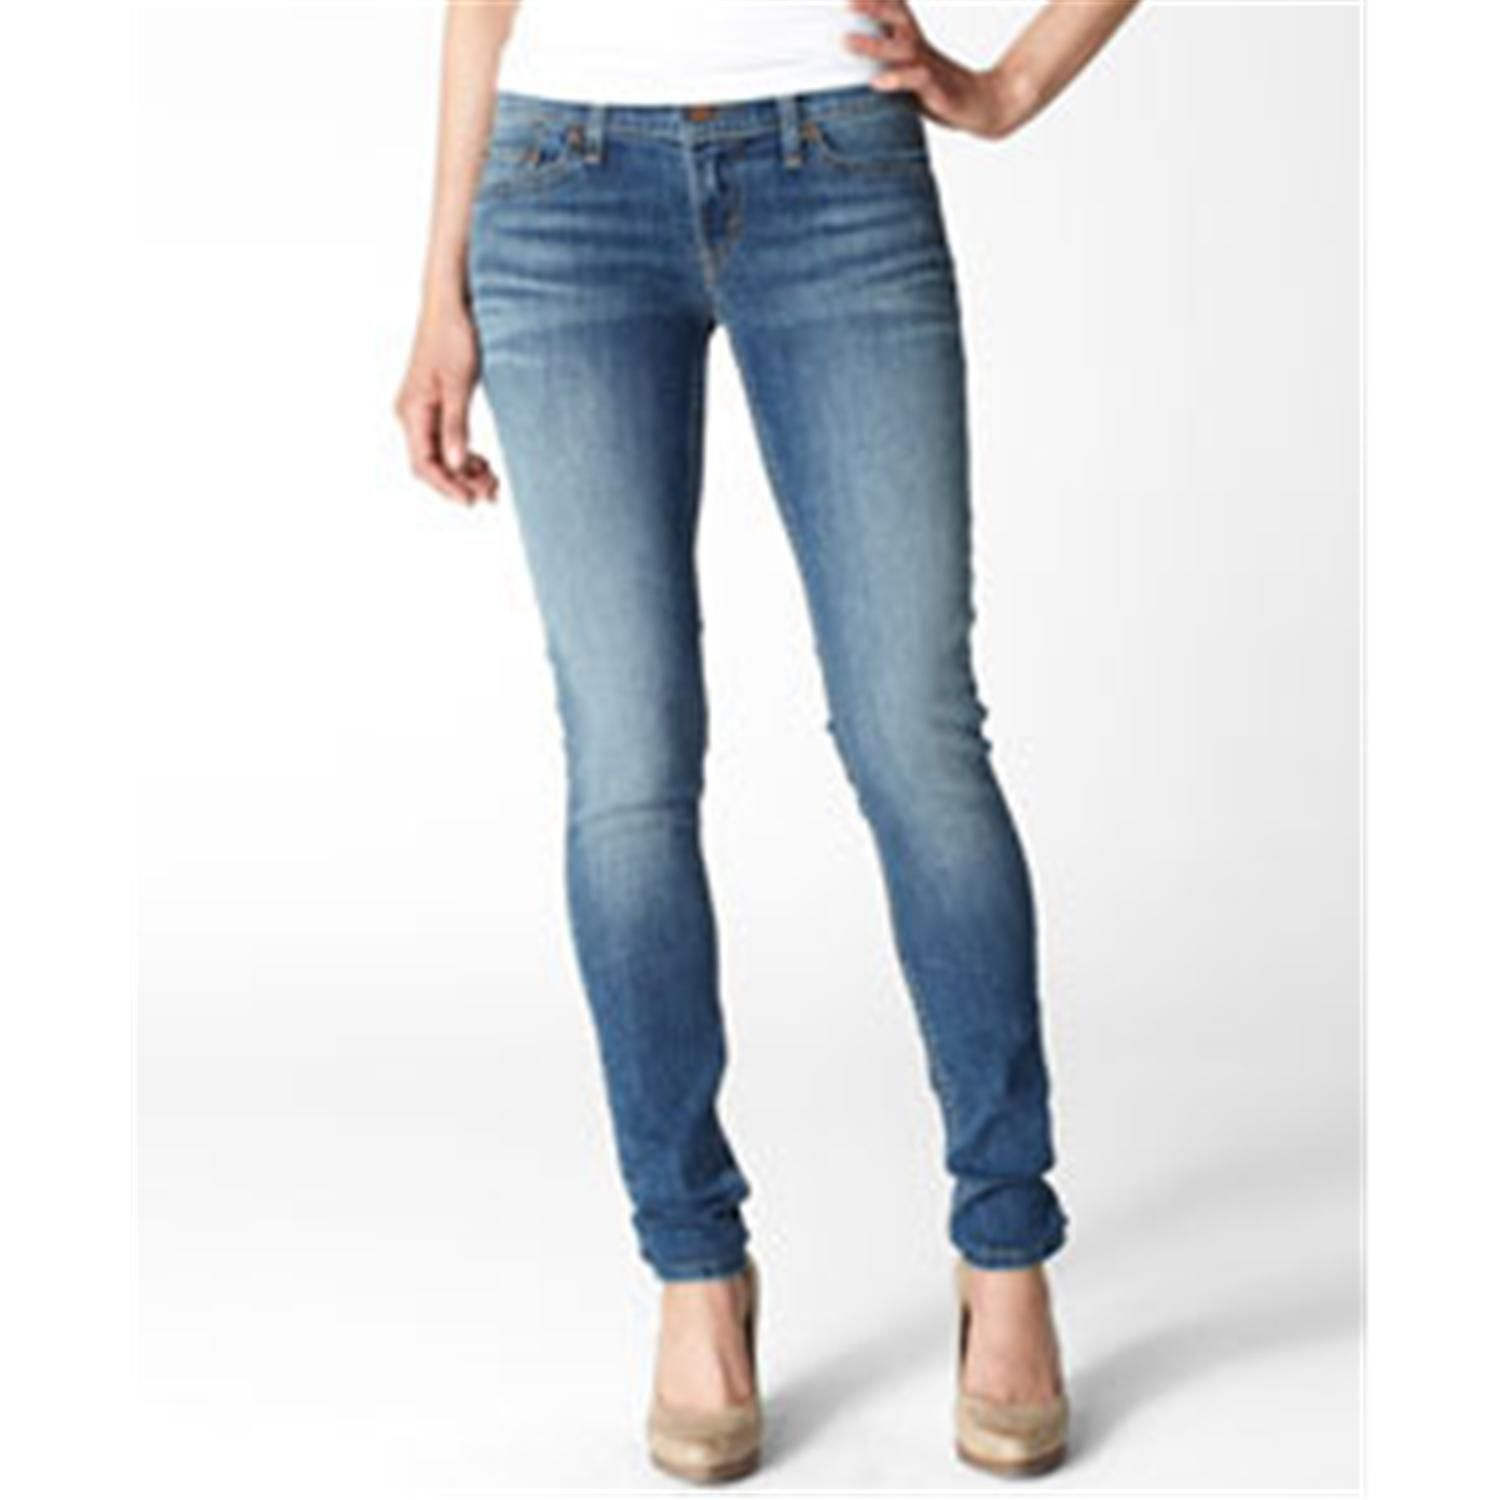 Find great deals on eBay for women skinny jeans. Shop with confidence.